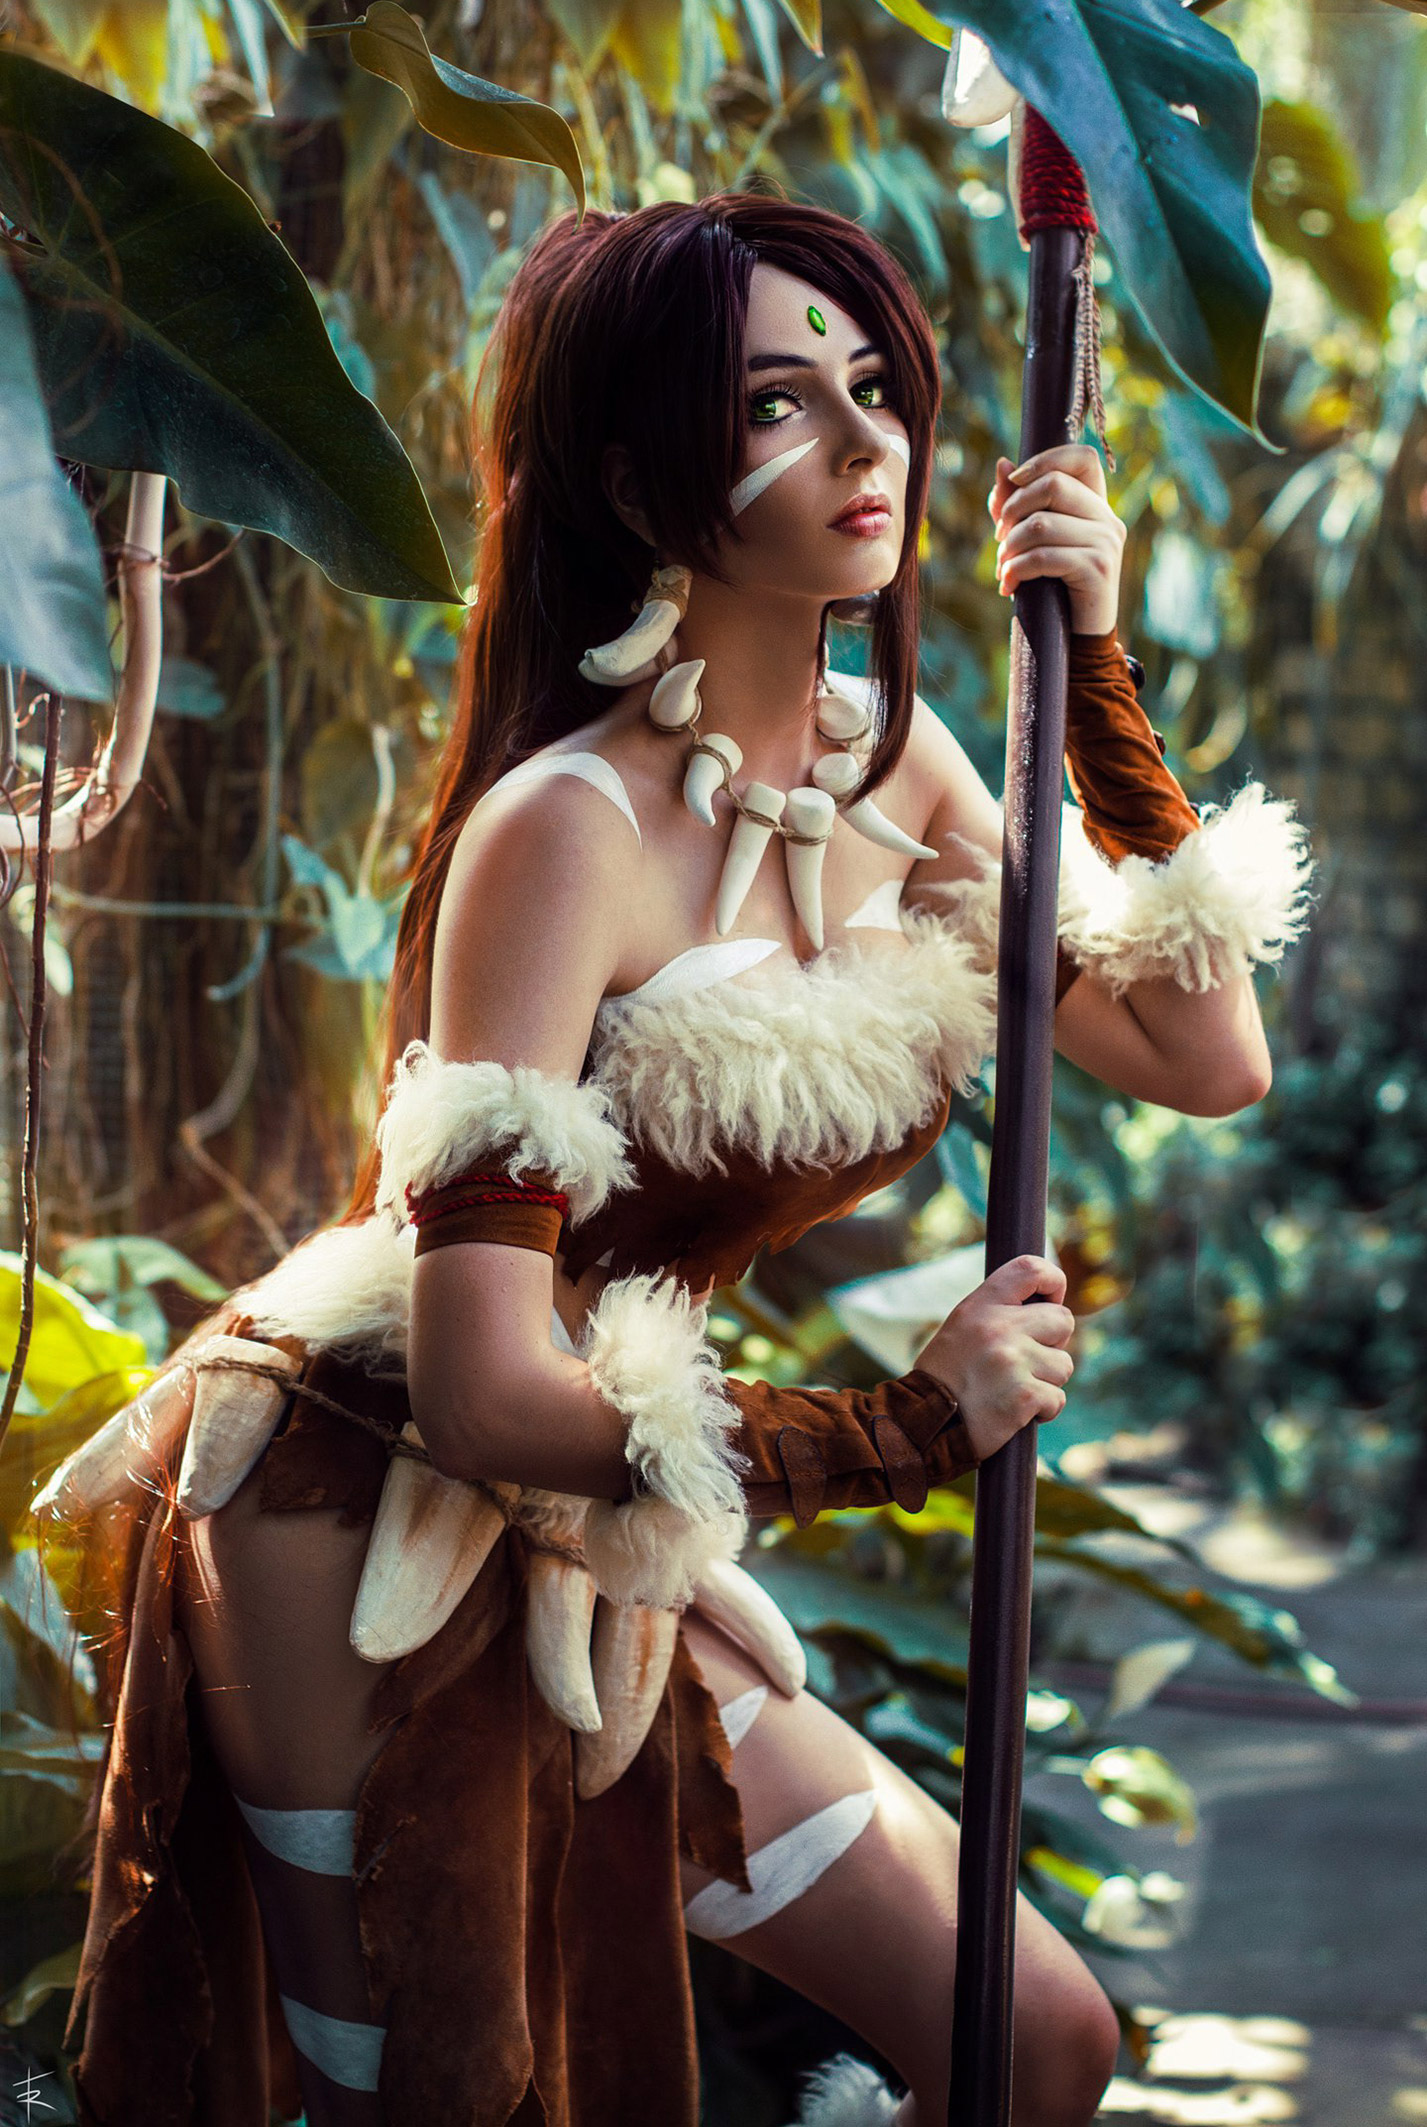 Cosplay / Bellatrix Aiden в роли Дикой охотницы Nidalee из вселенной League of Legends / фотограф Tim Rise